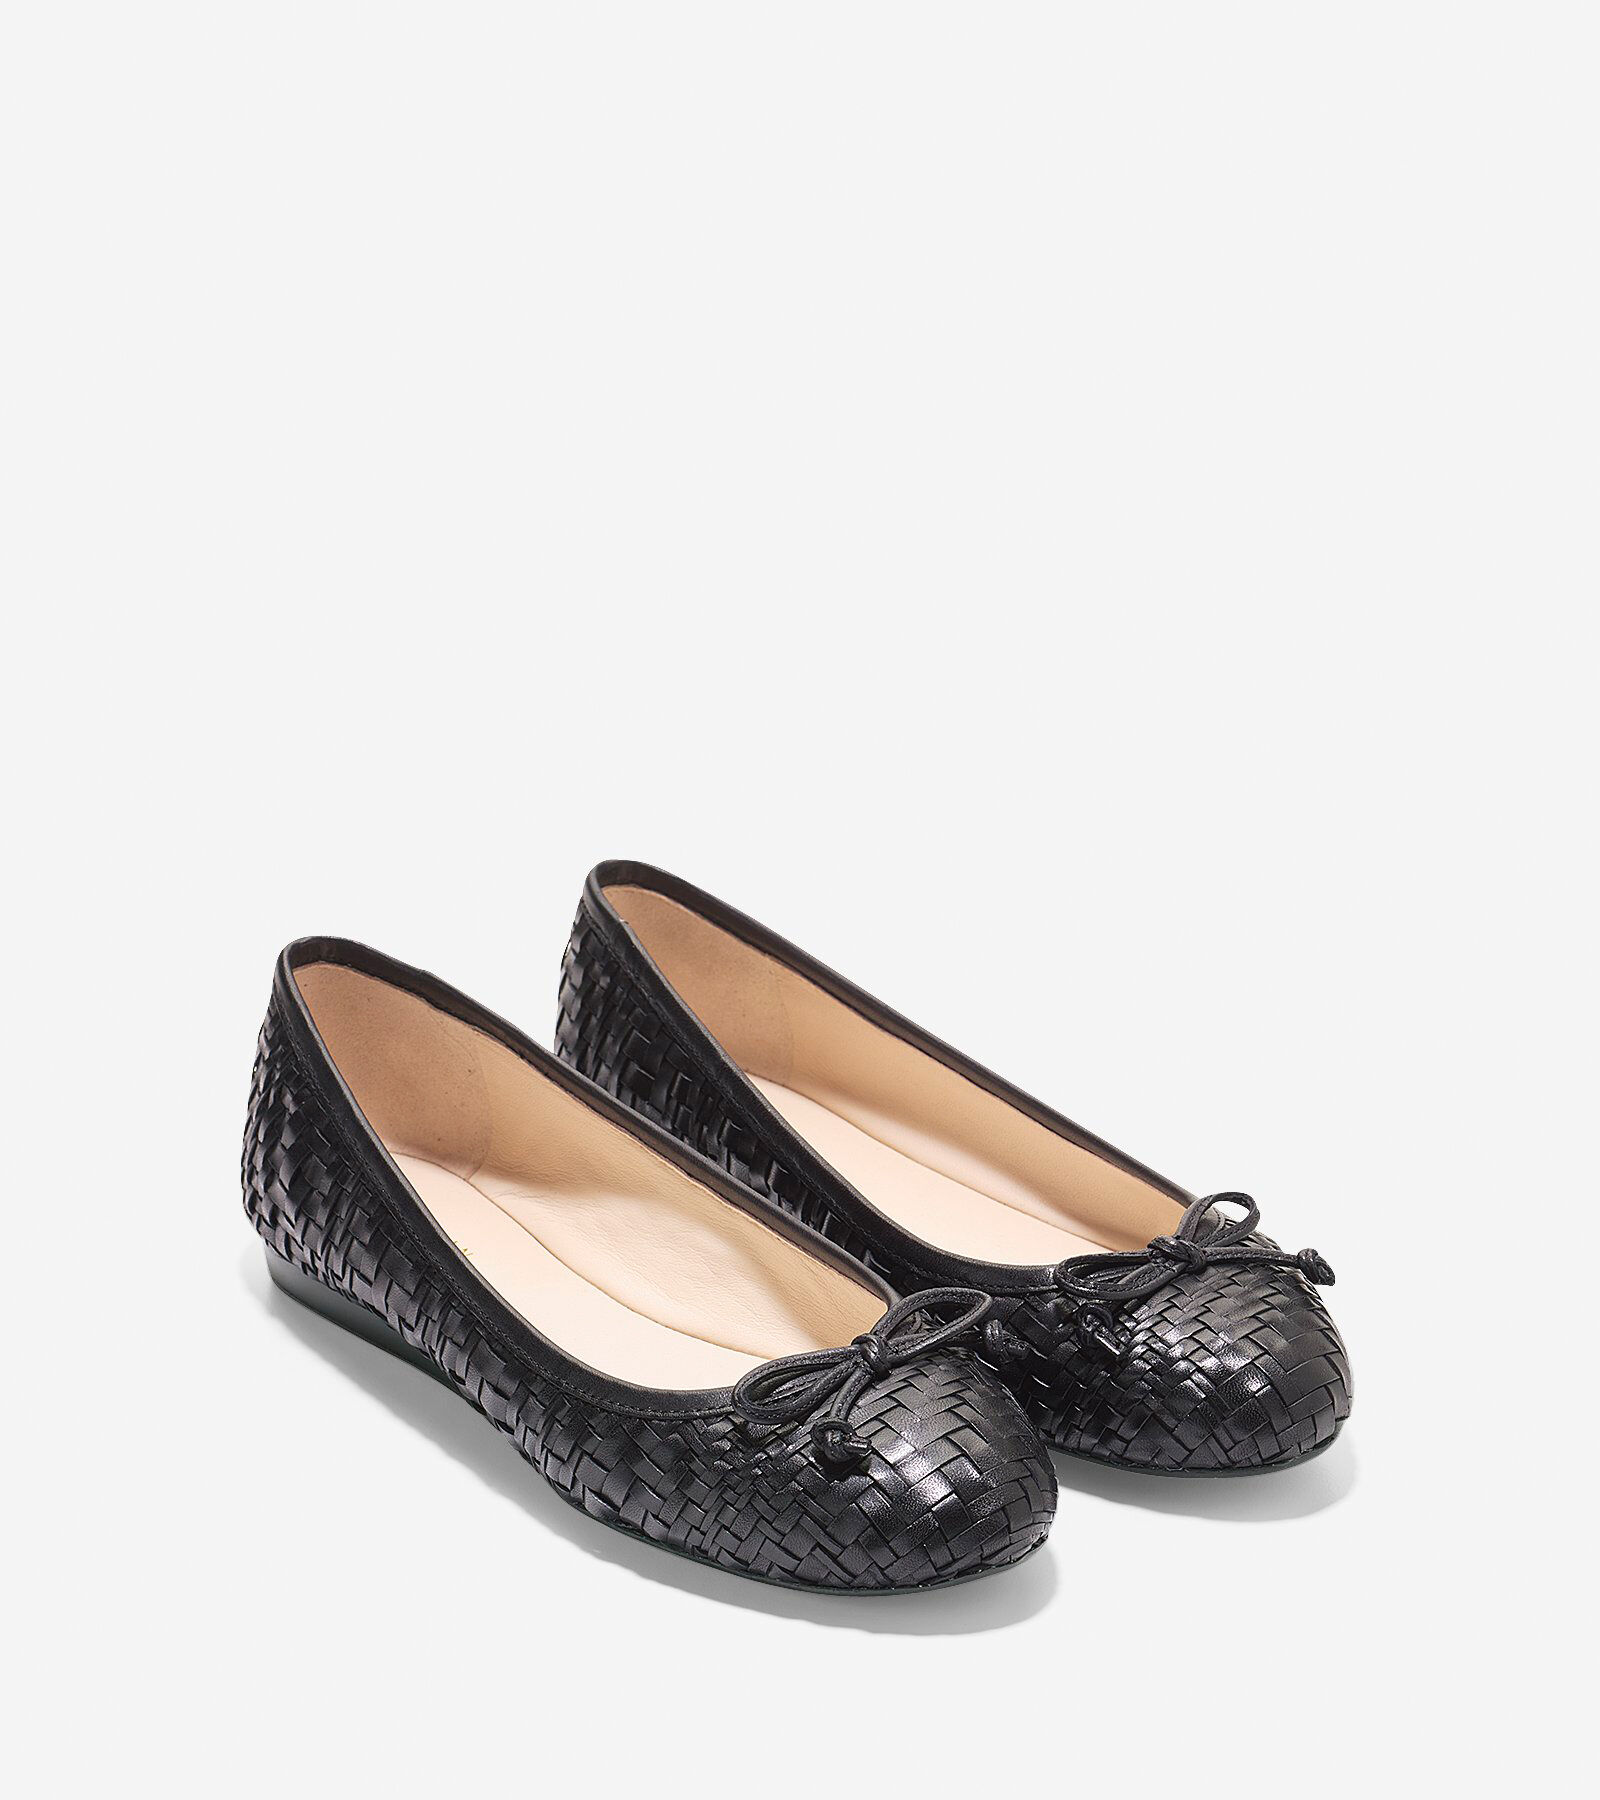 discount limited edition big sale online Cole Haan Woven Leather Flats pt1xZ2